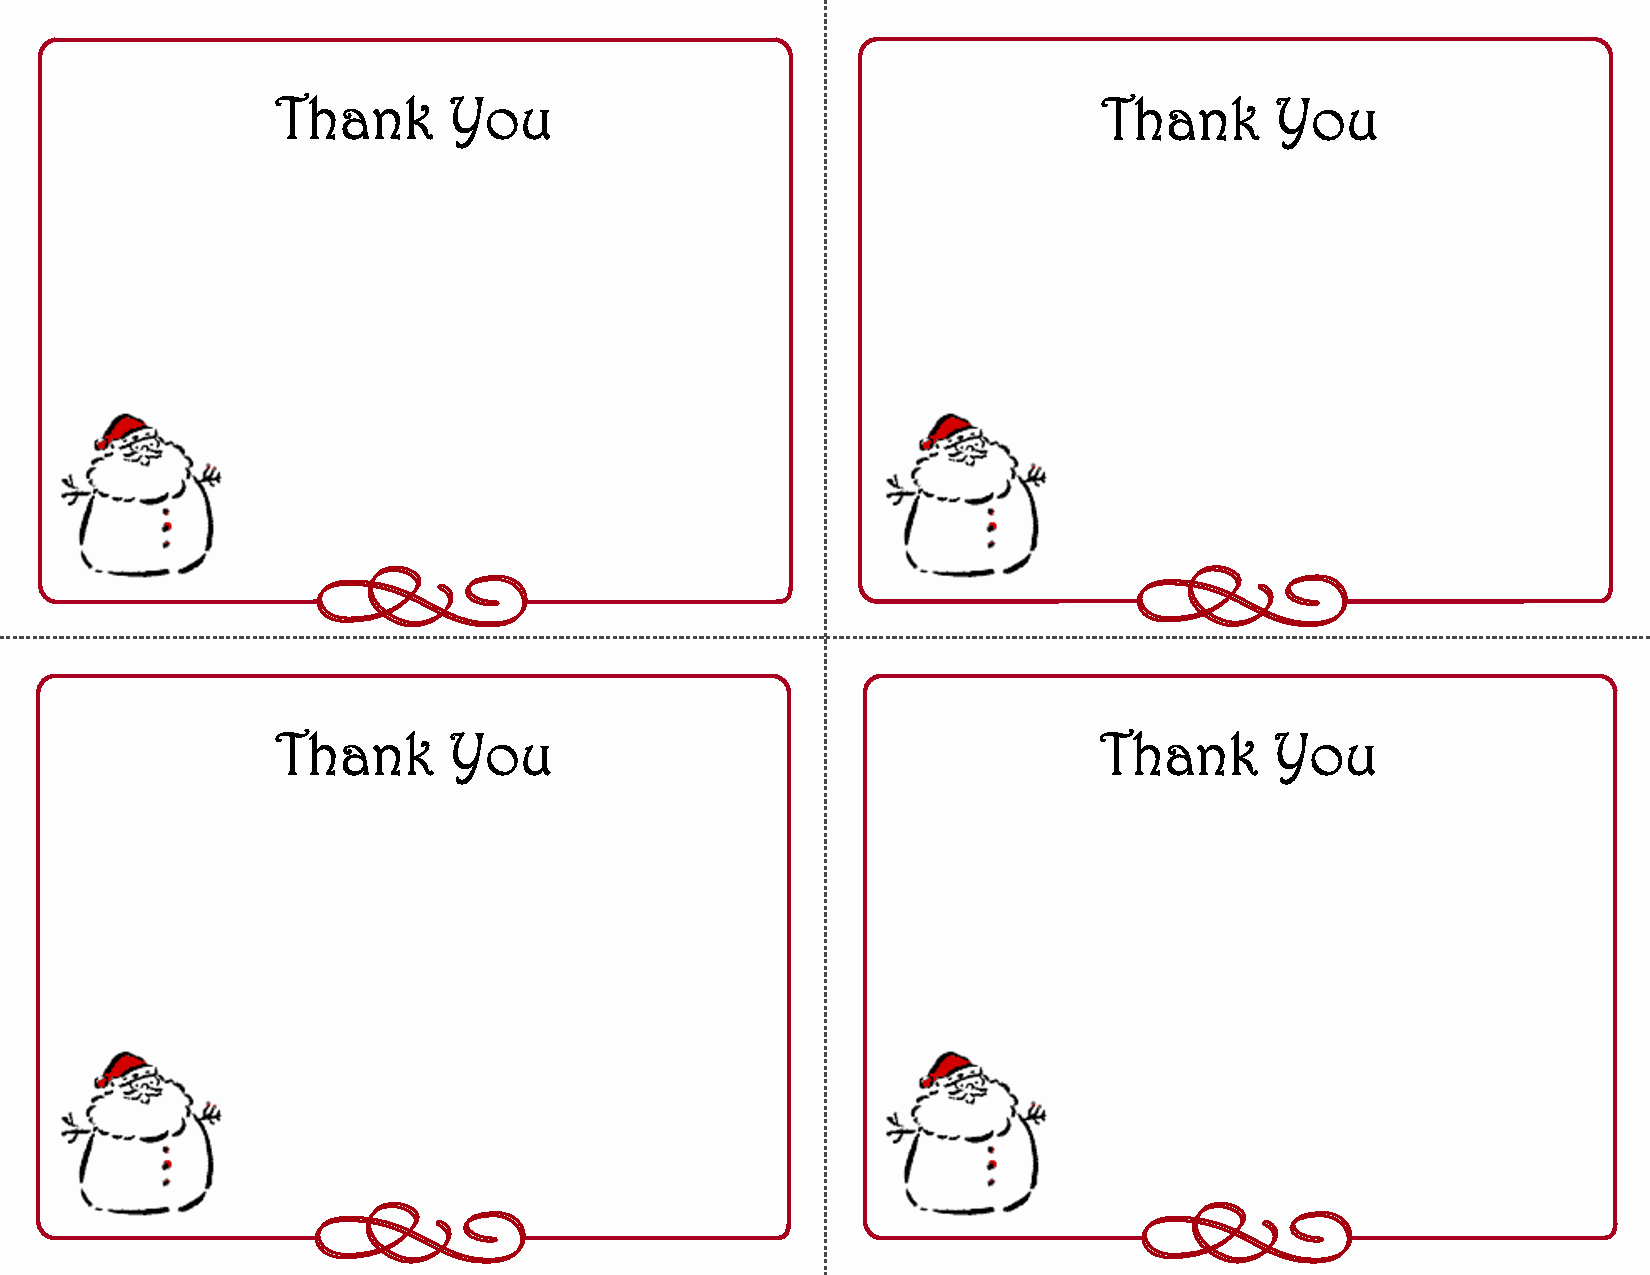 Free Printable Note Cards Template Lovely Printable Christmas Thank You Card Templates